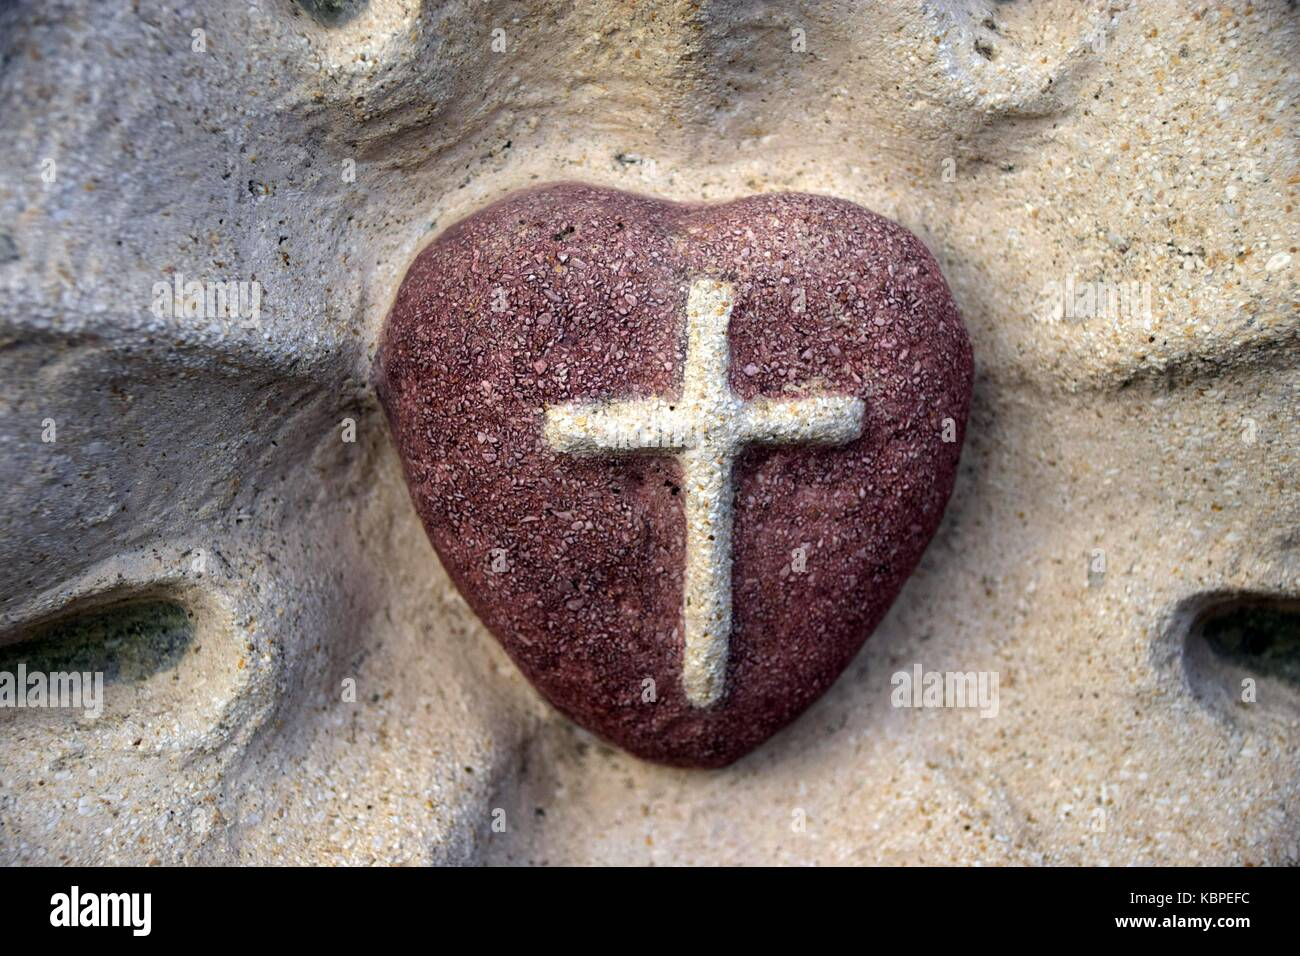 a red heart made of sandstone, a cross in the middle, Symbol of love, Christian Symbol, bas-relief, basalt relief, - Stock Image